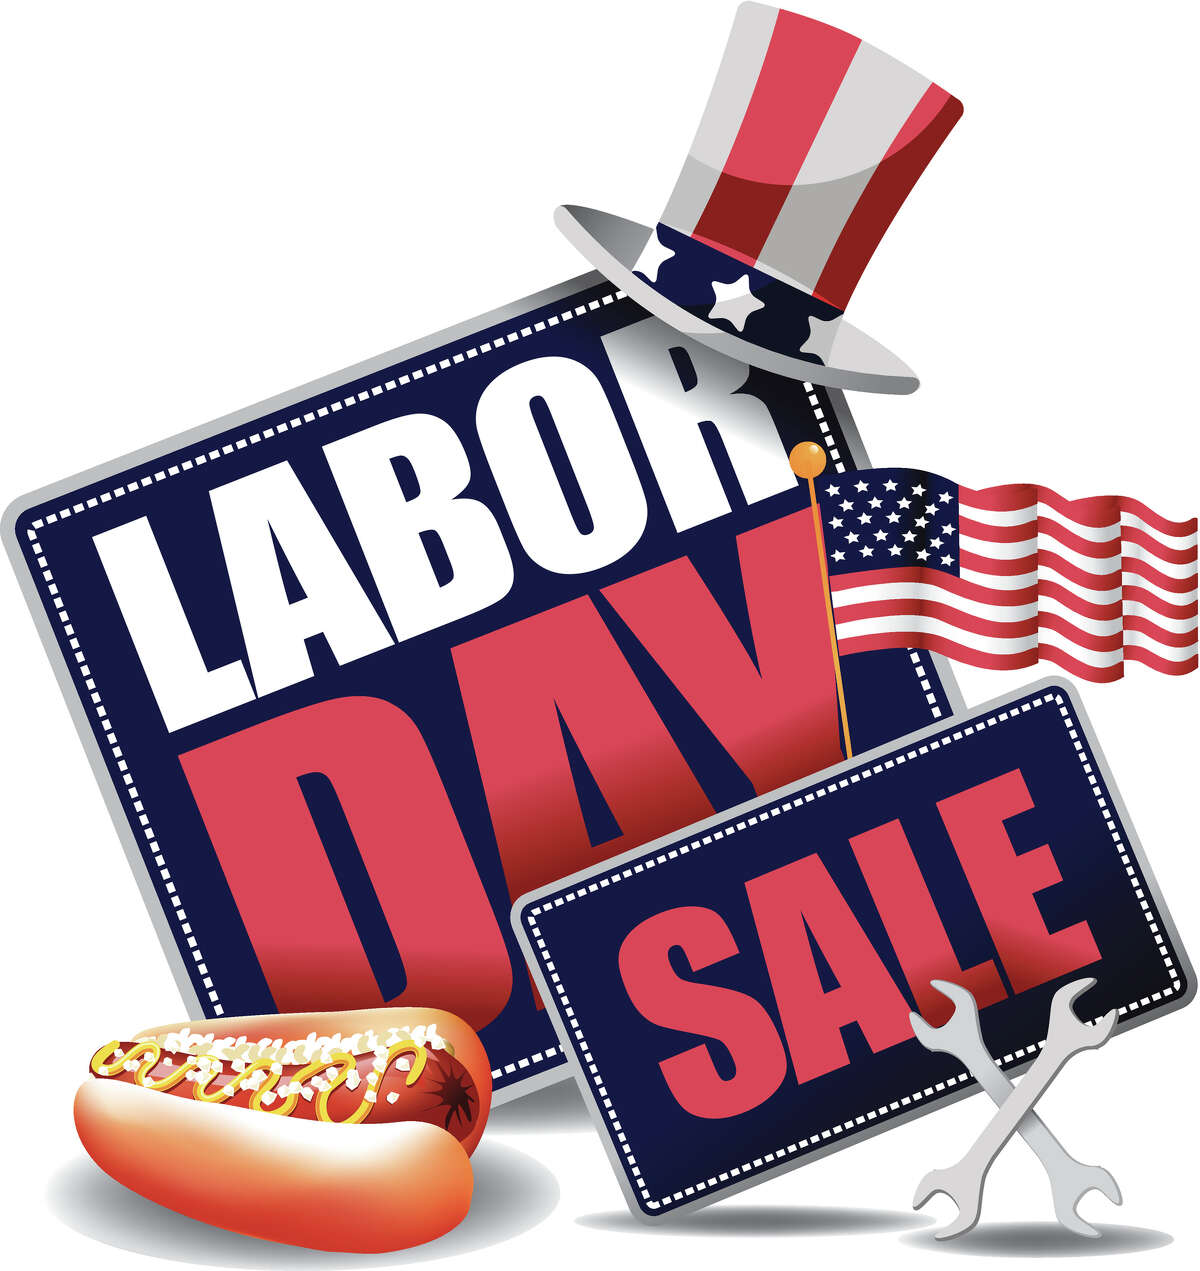 Labor Day weekend signals a week of savings that rivals - and sometimes beats - prominent sales events such as Black Friday and Cyber Monday.